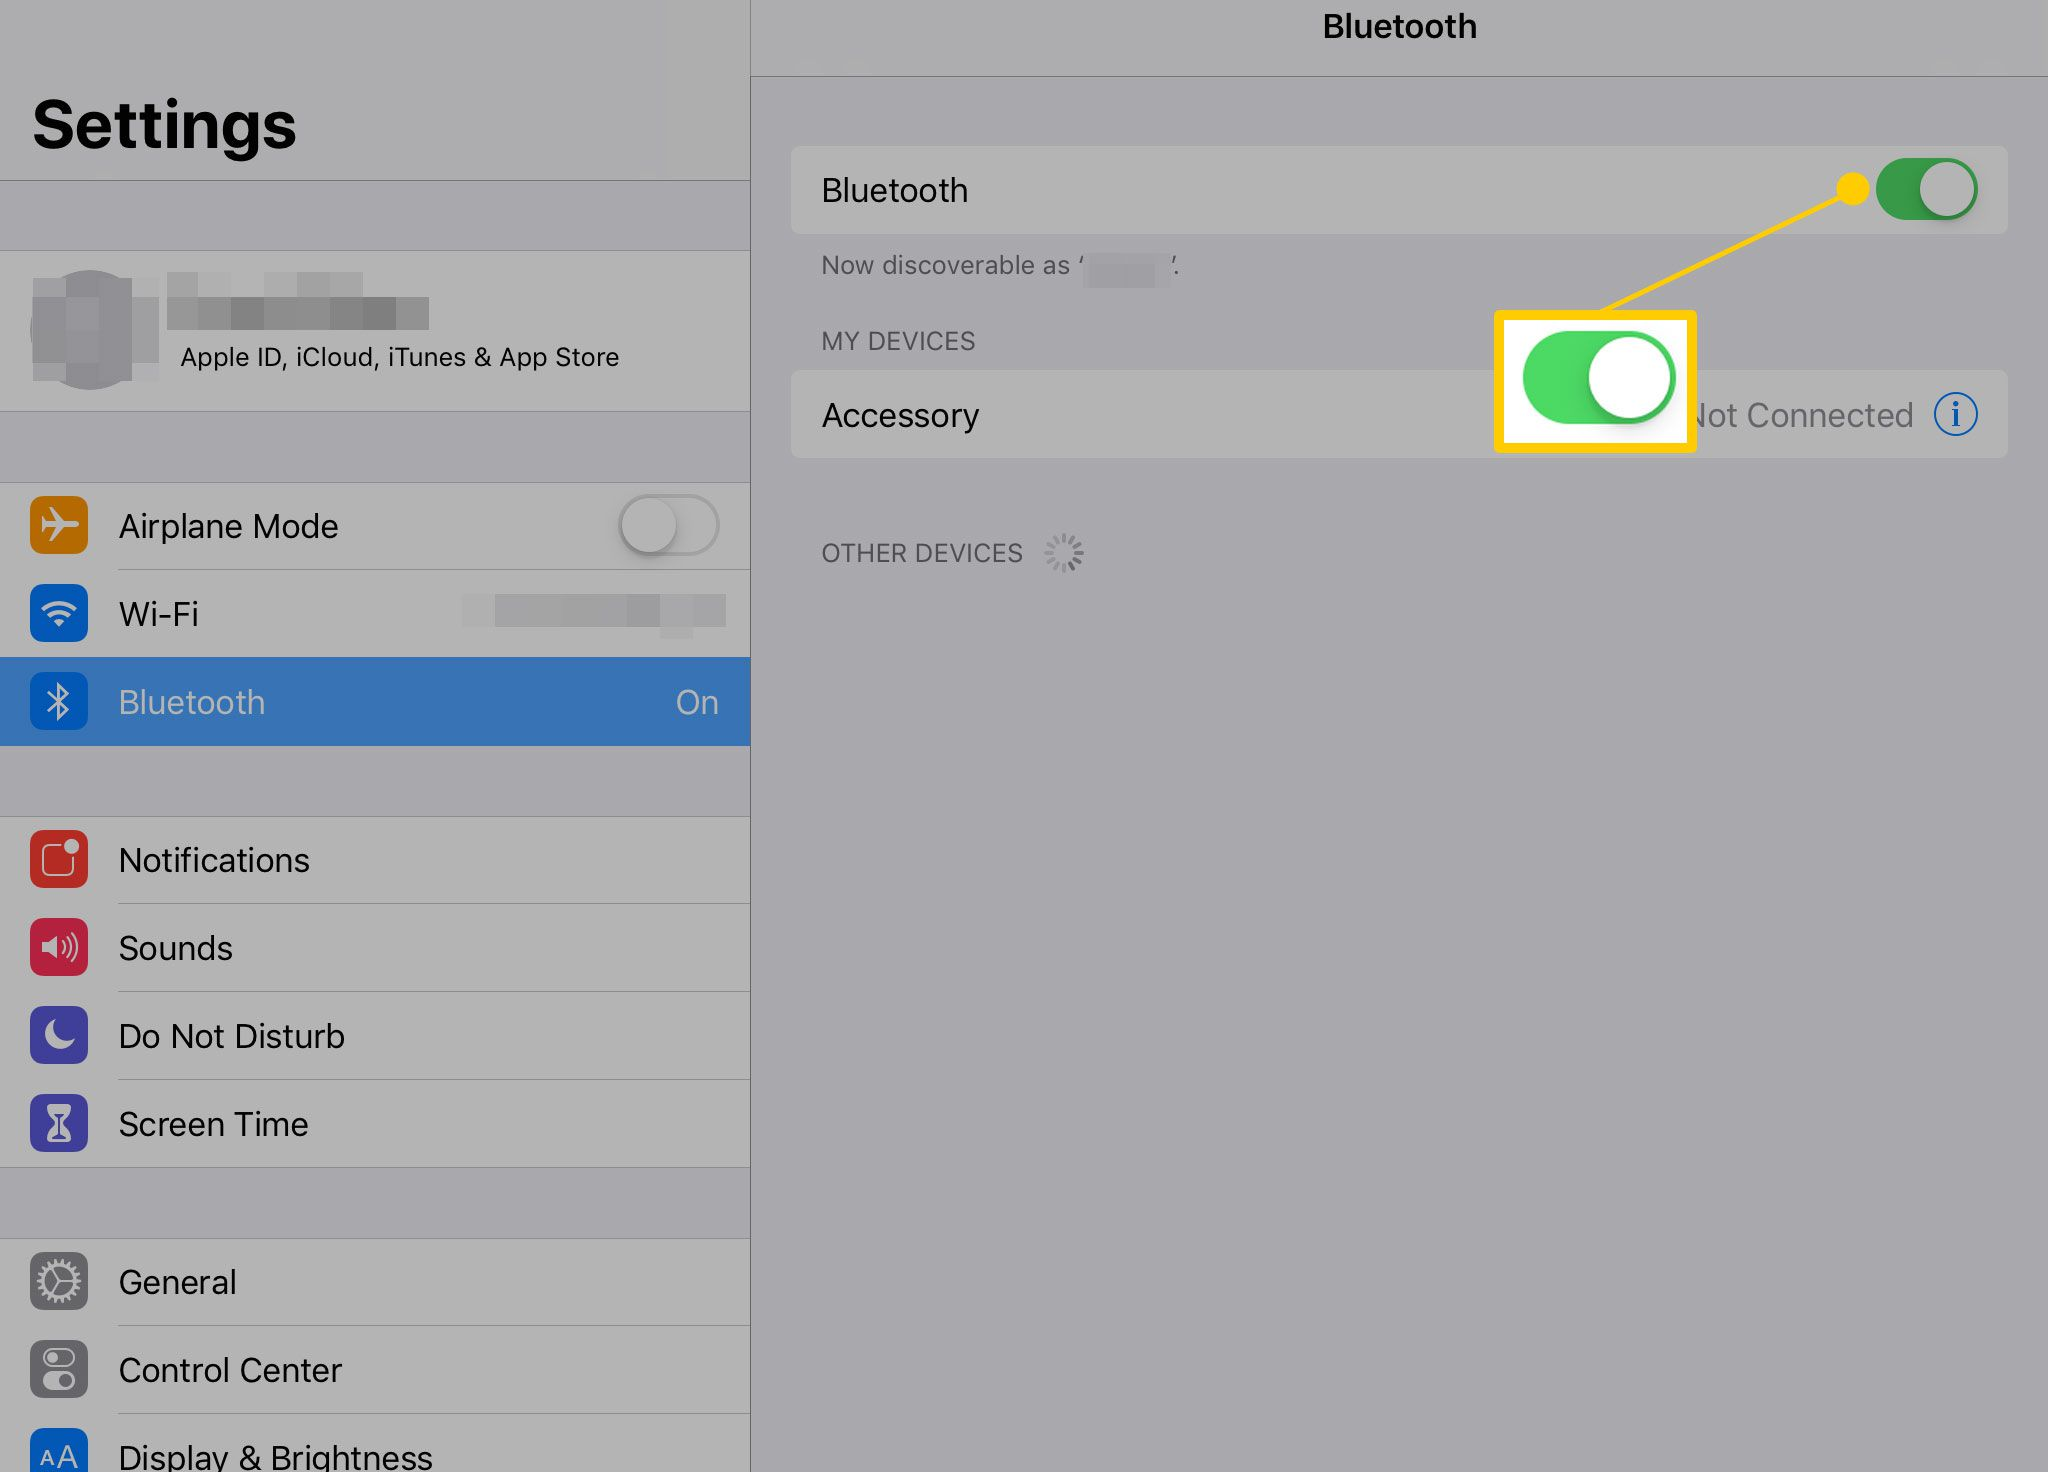 How To Pair Connect Or Forget A Bluetooth Device To The Ipad